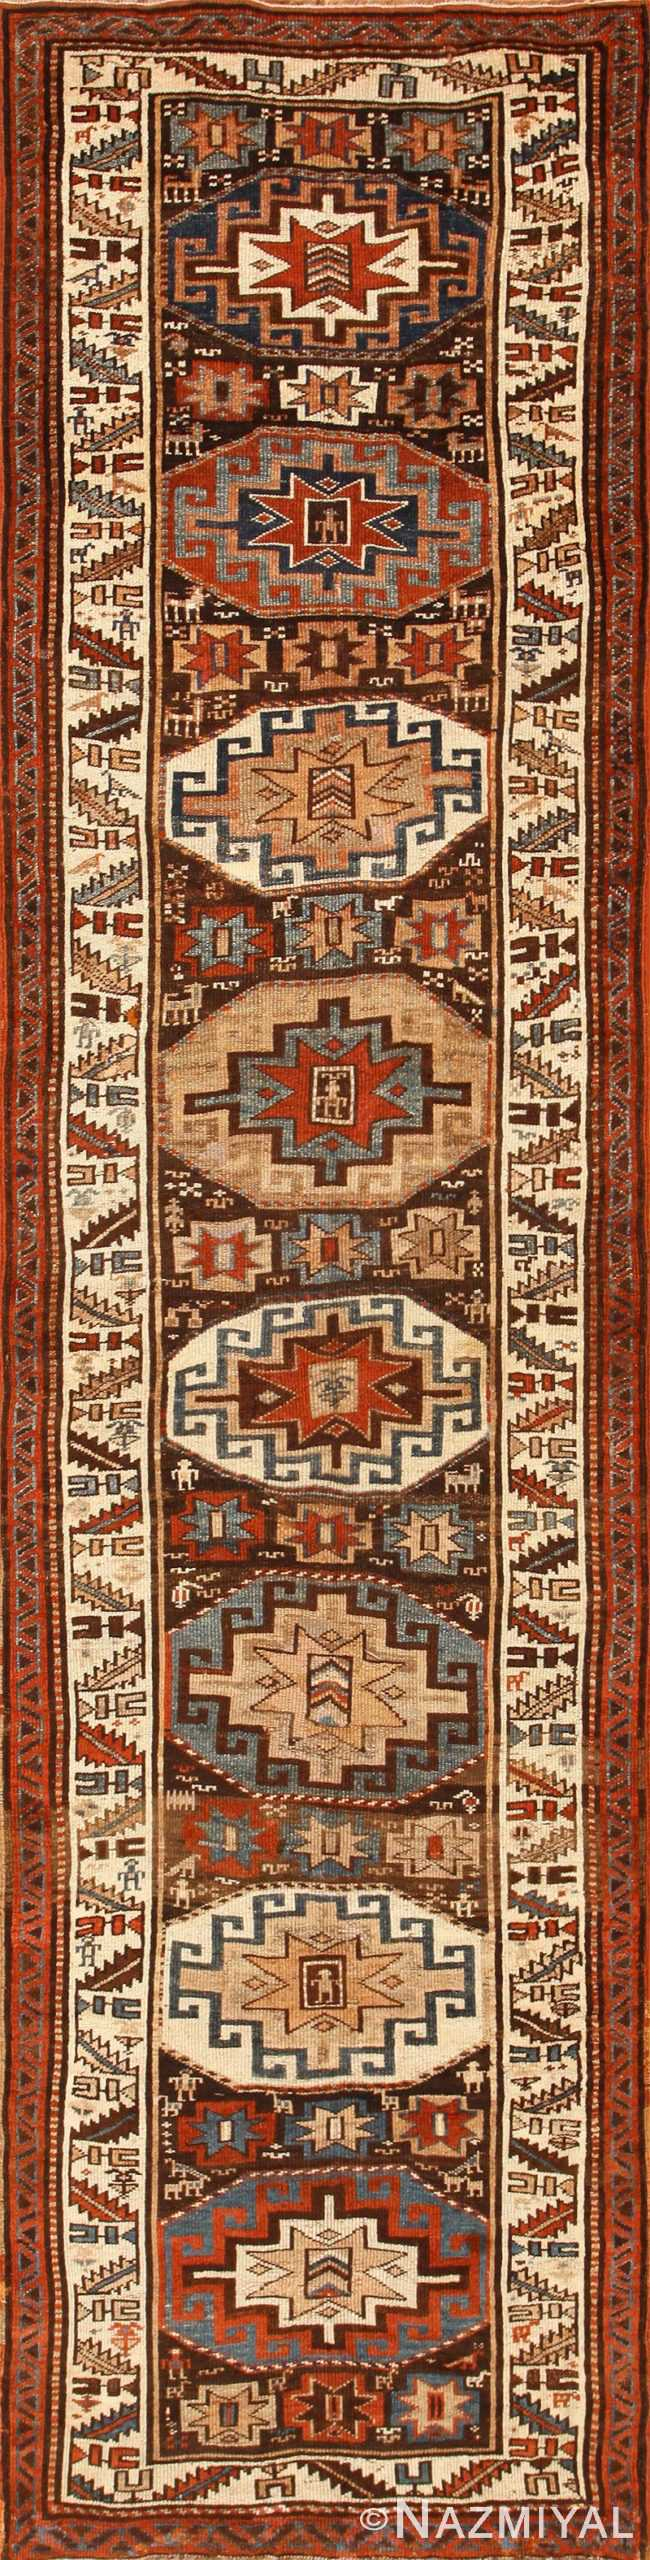 Tribal Antique Persian Kurdish Runner Rug 50463 Nazmiyal